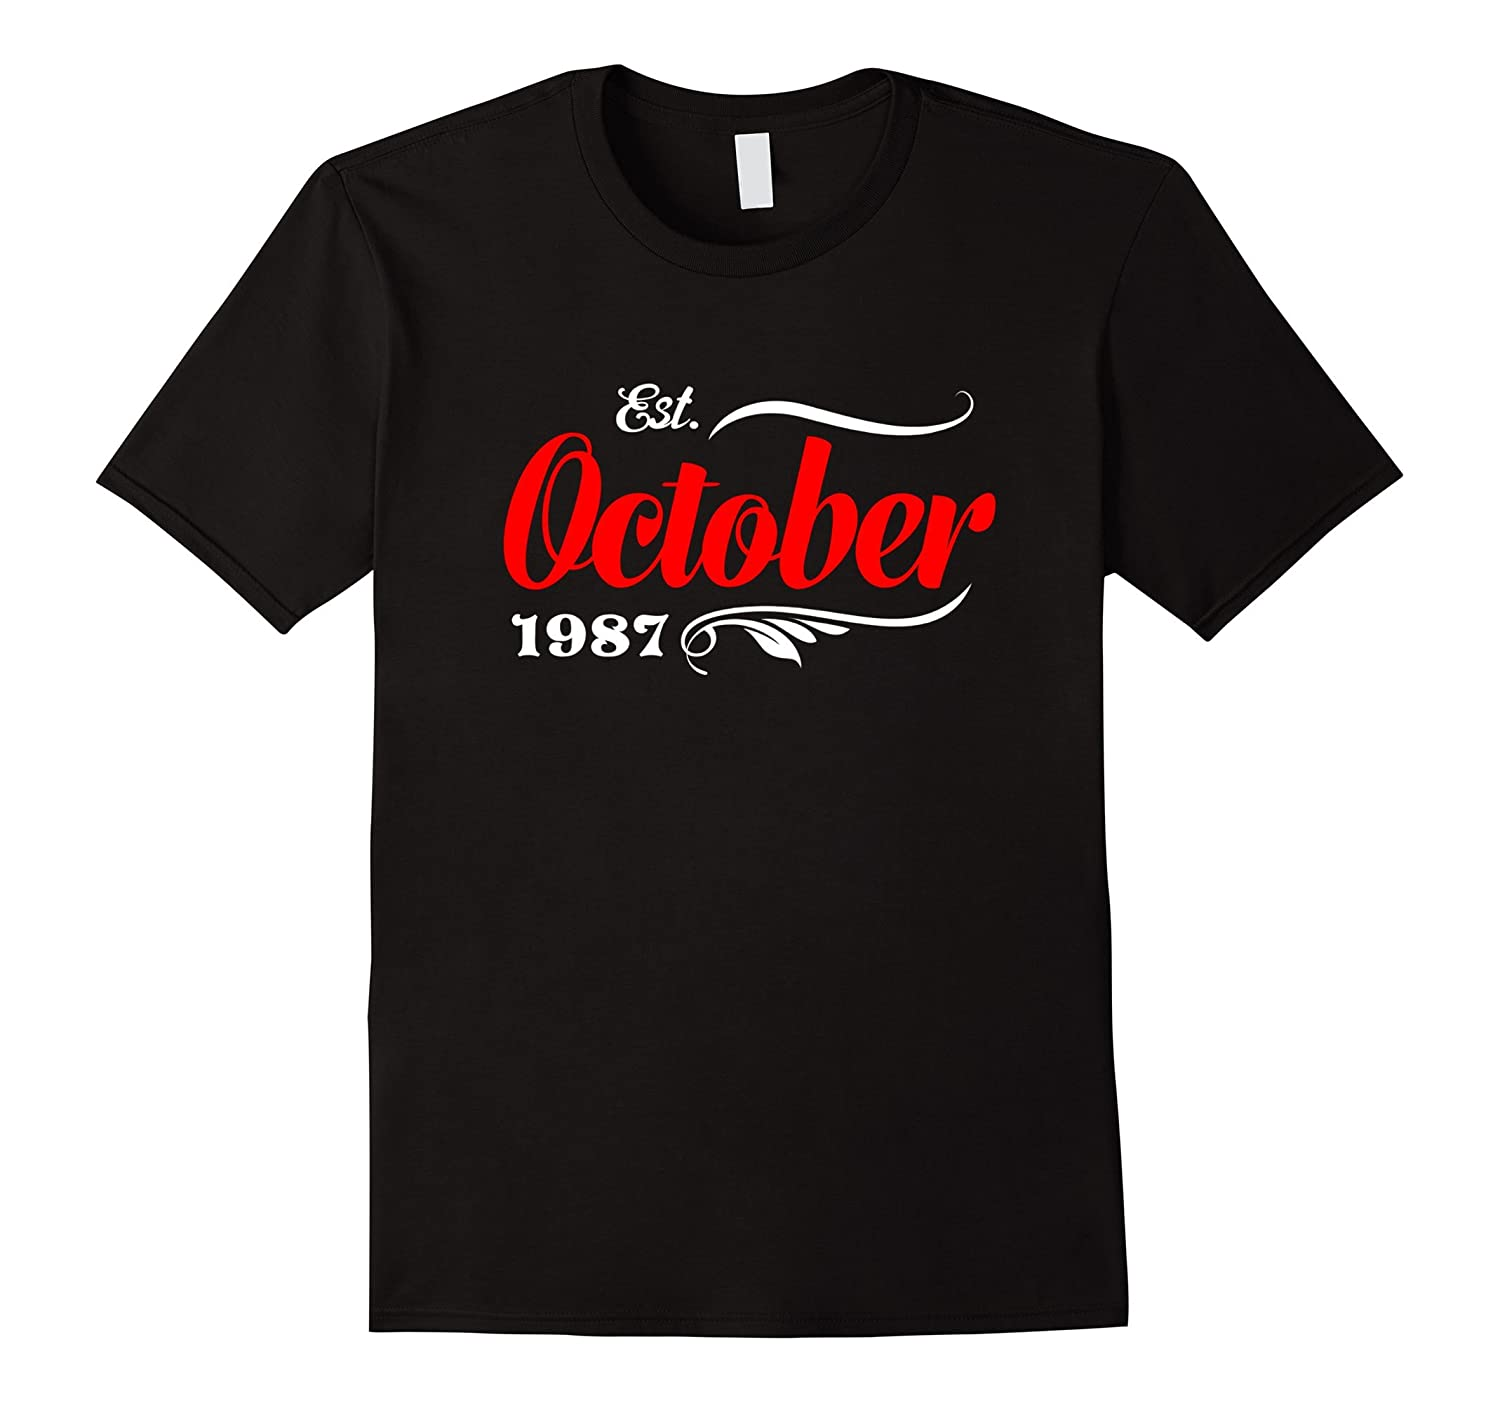 30th Birthday Gifts - Est October 1987 T-Shirt-TJ